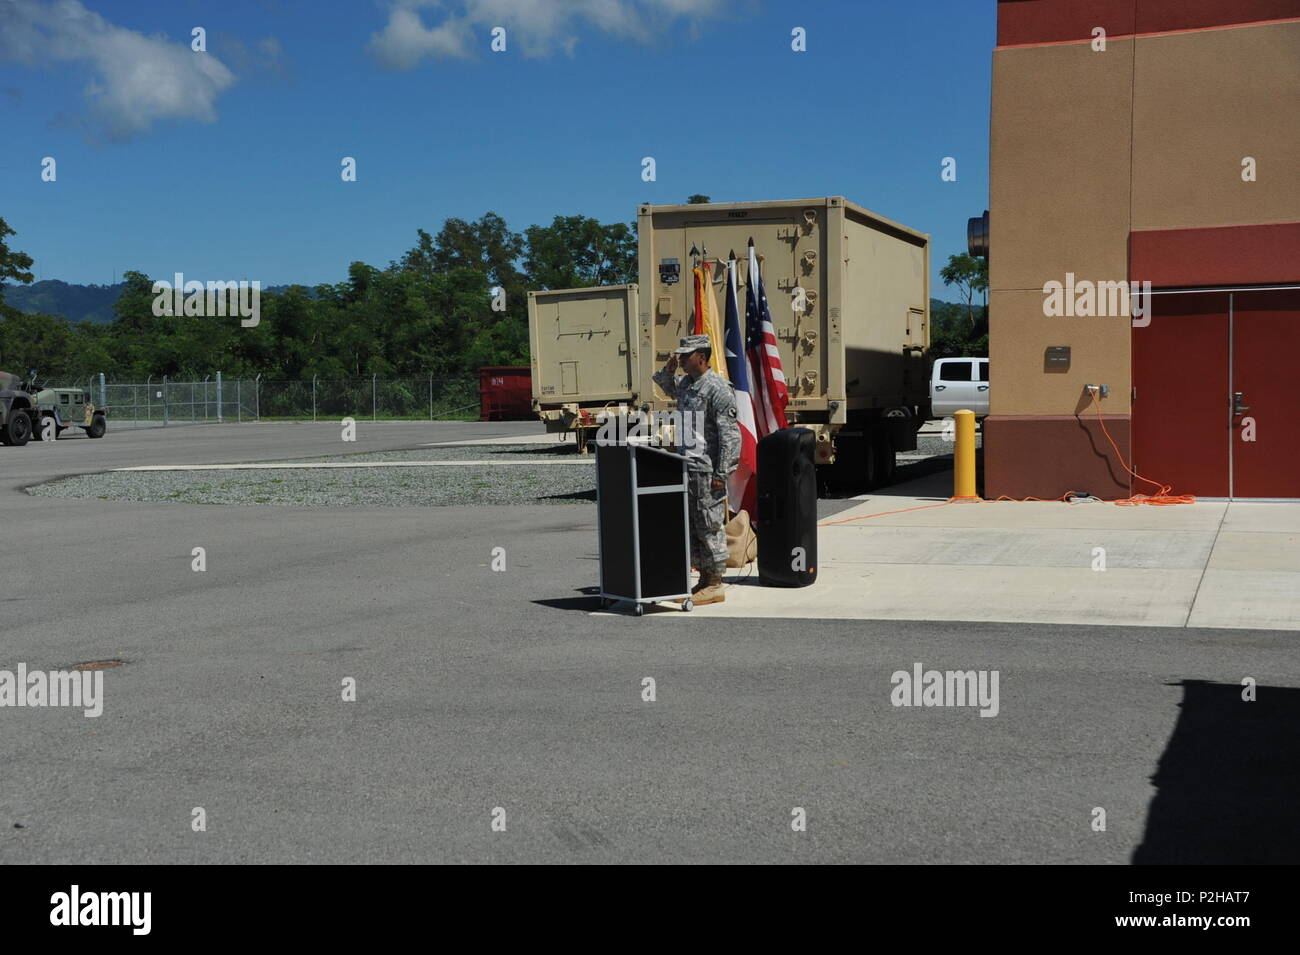 Soldiers, family and friends gathered to bid farewell to approximately 45 U.S. Army Reserve Soldiers from the 246th Quartermaster Company (QM Co.) (Mortuary Affairs) on September 25, at the U.S. Army Reserve Center in Mayaguez, Puerto Rico. - Stock Image